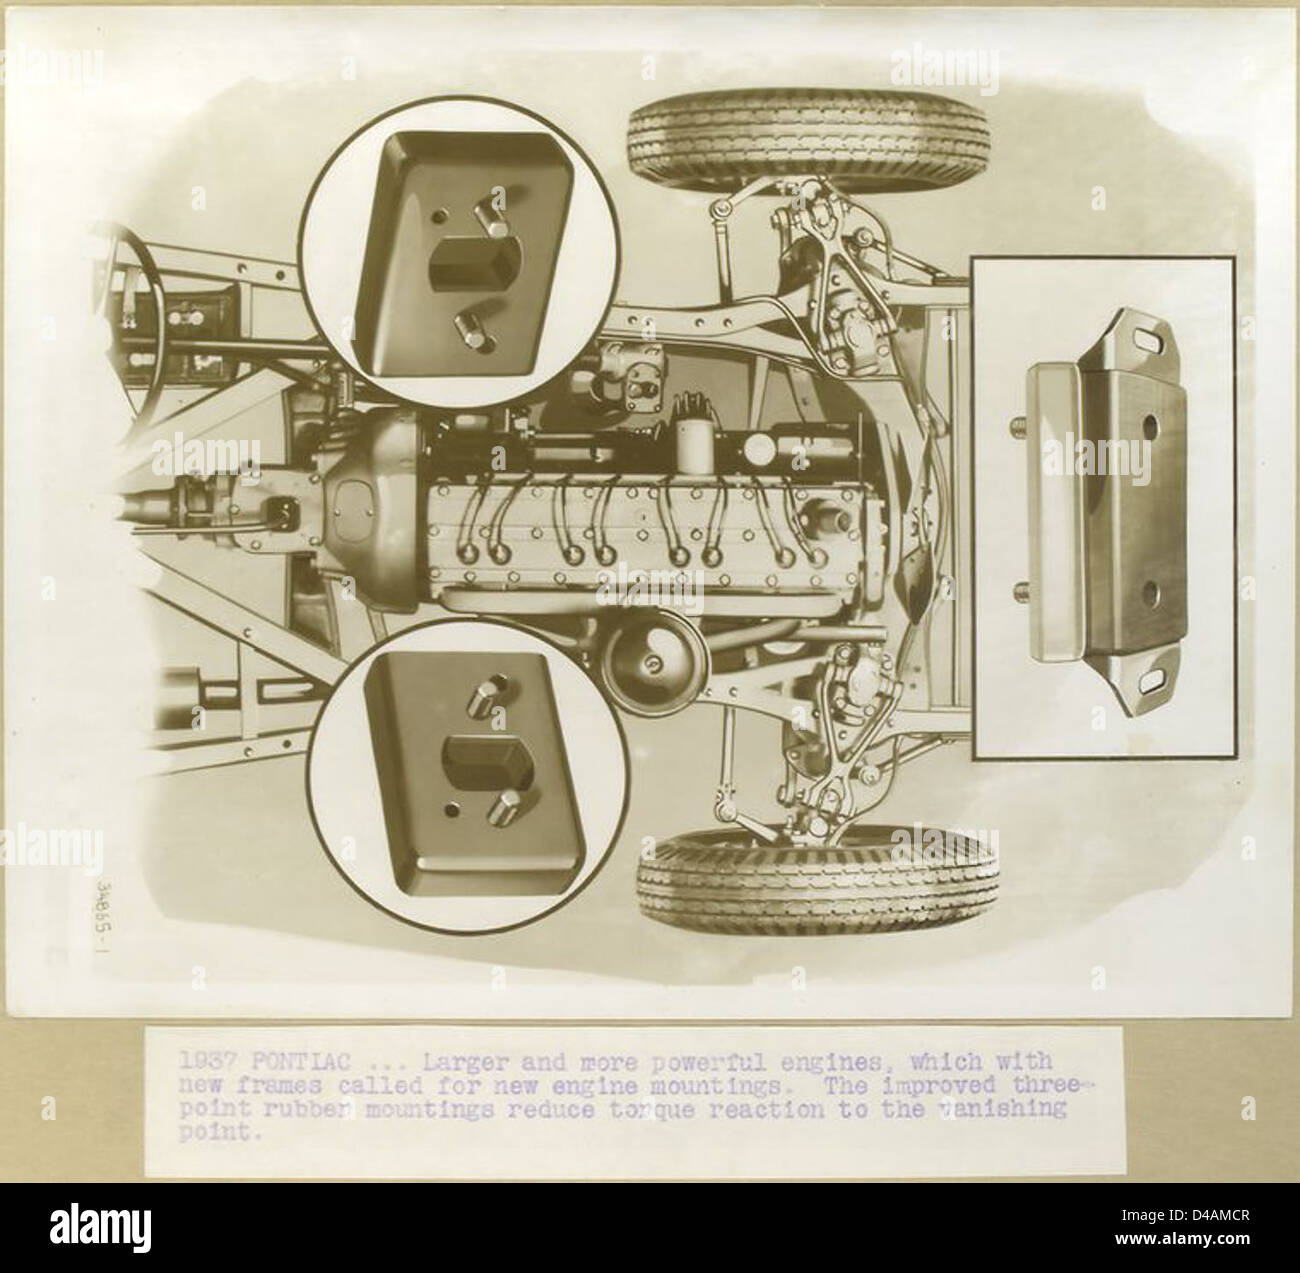 1937 Pontiac Stock Photos Images Alamy Engine Technology Larger And More Powerful Engines Which With